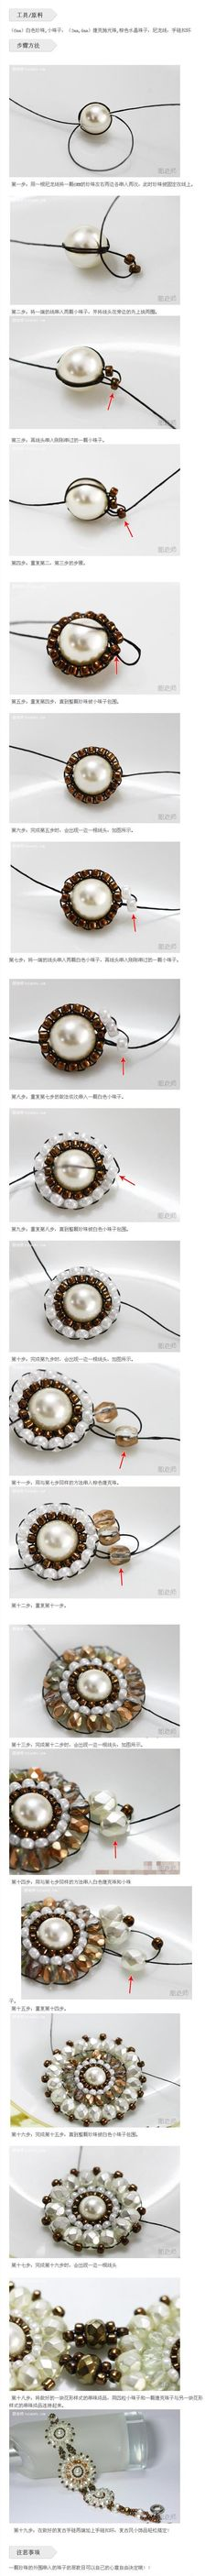 Tutorial for a Retro beaded bracelet via duitang.com: Does any one know the original source of this? #DIY #Beaded_Bracelet #duitang